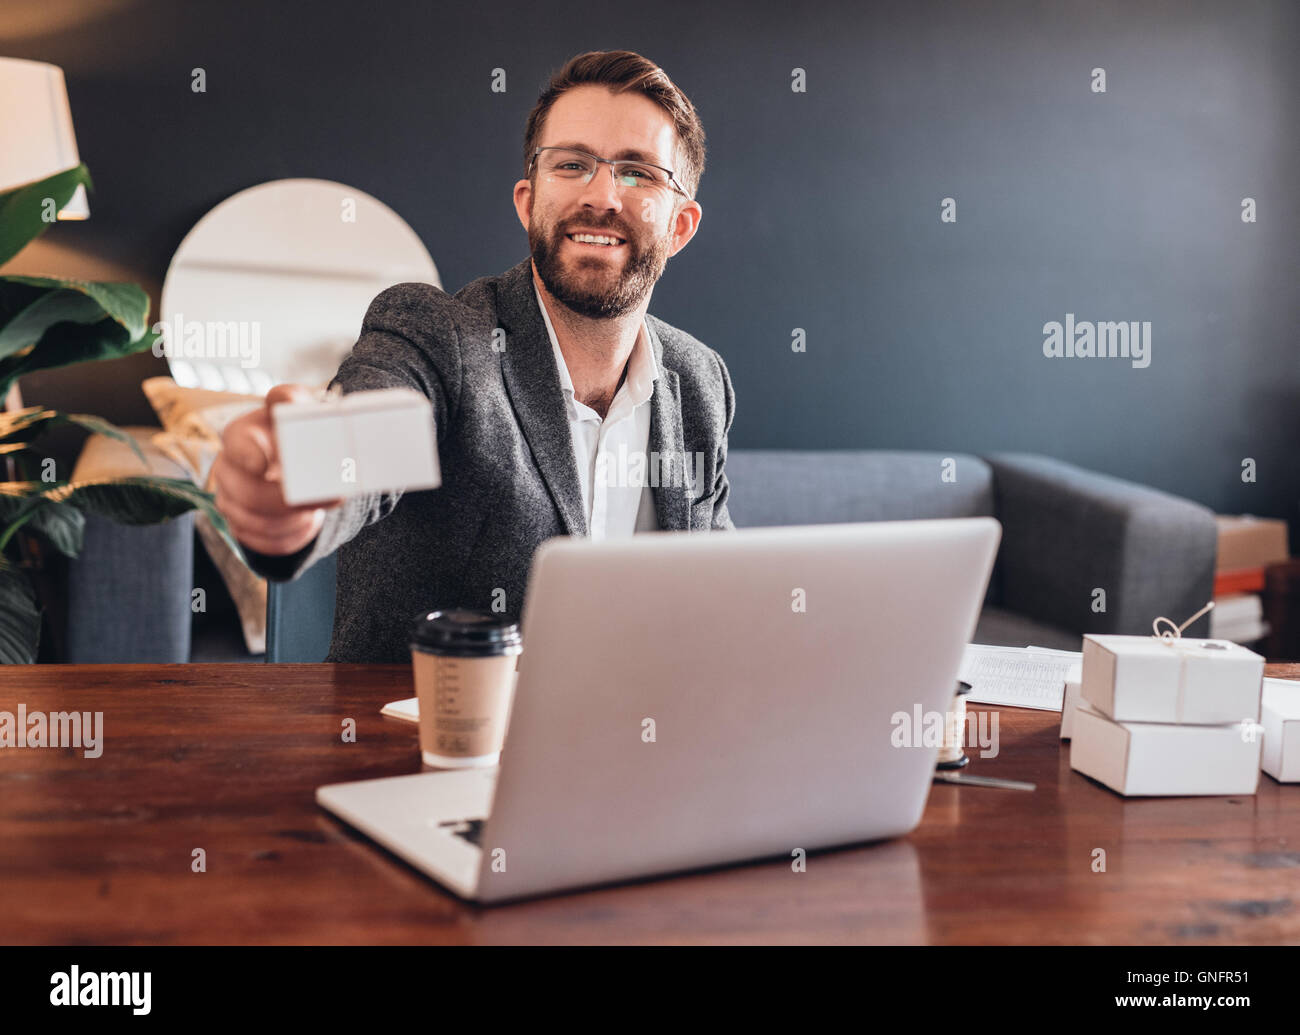 Big things come in small packages - Stock Image